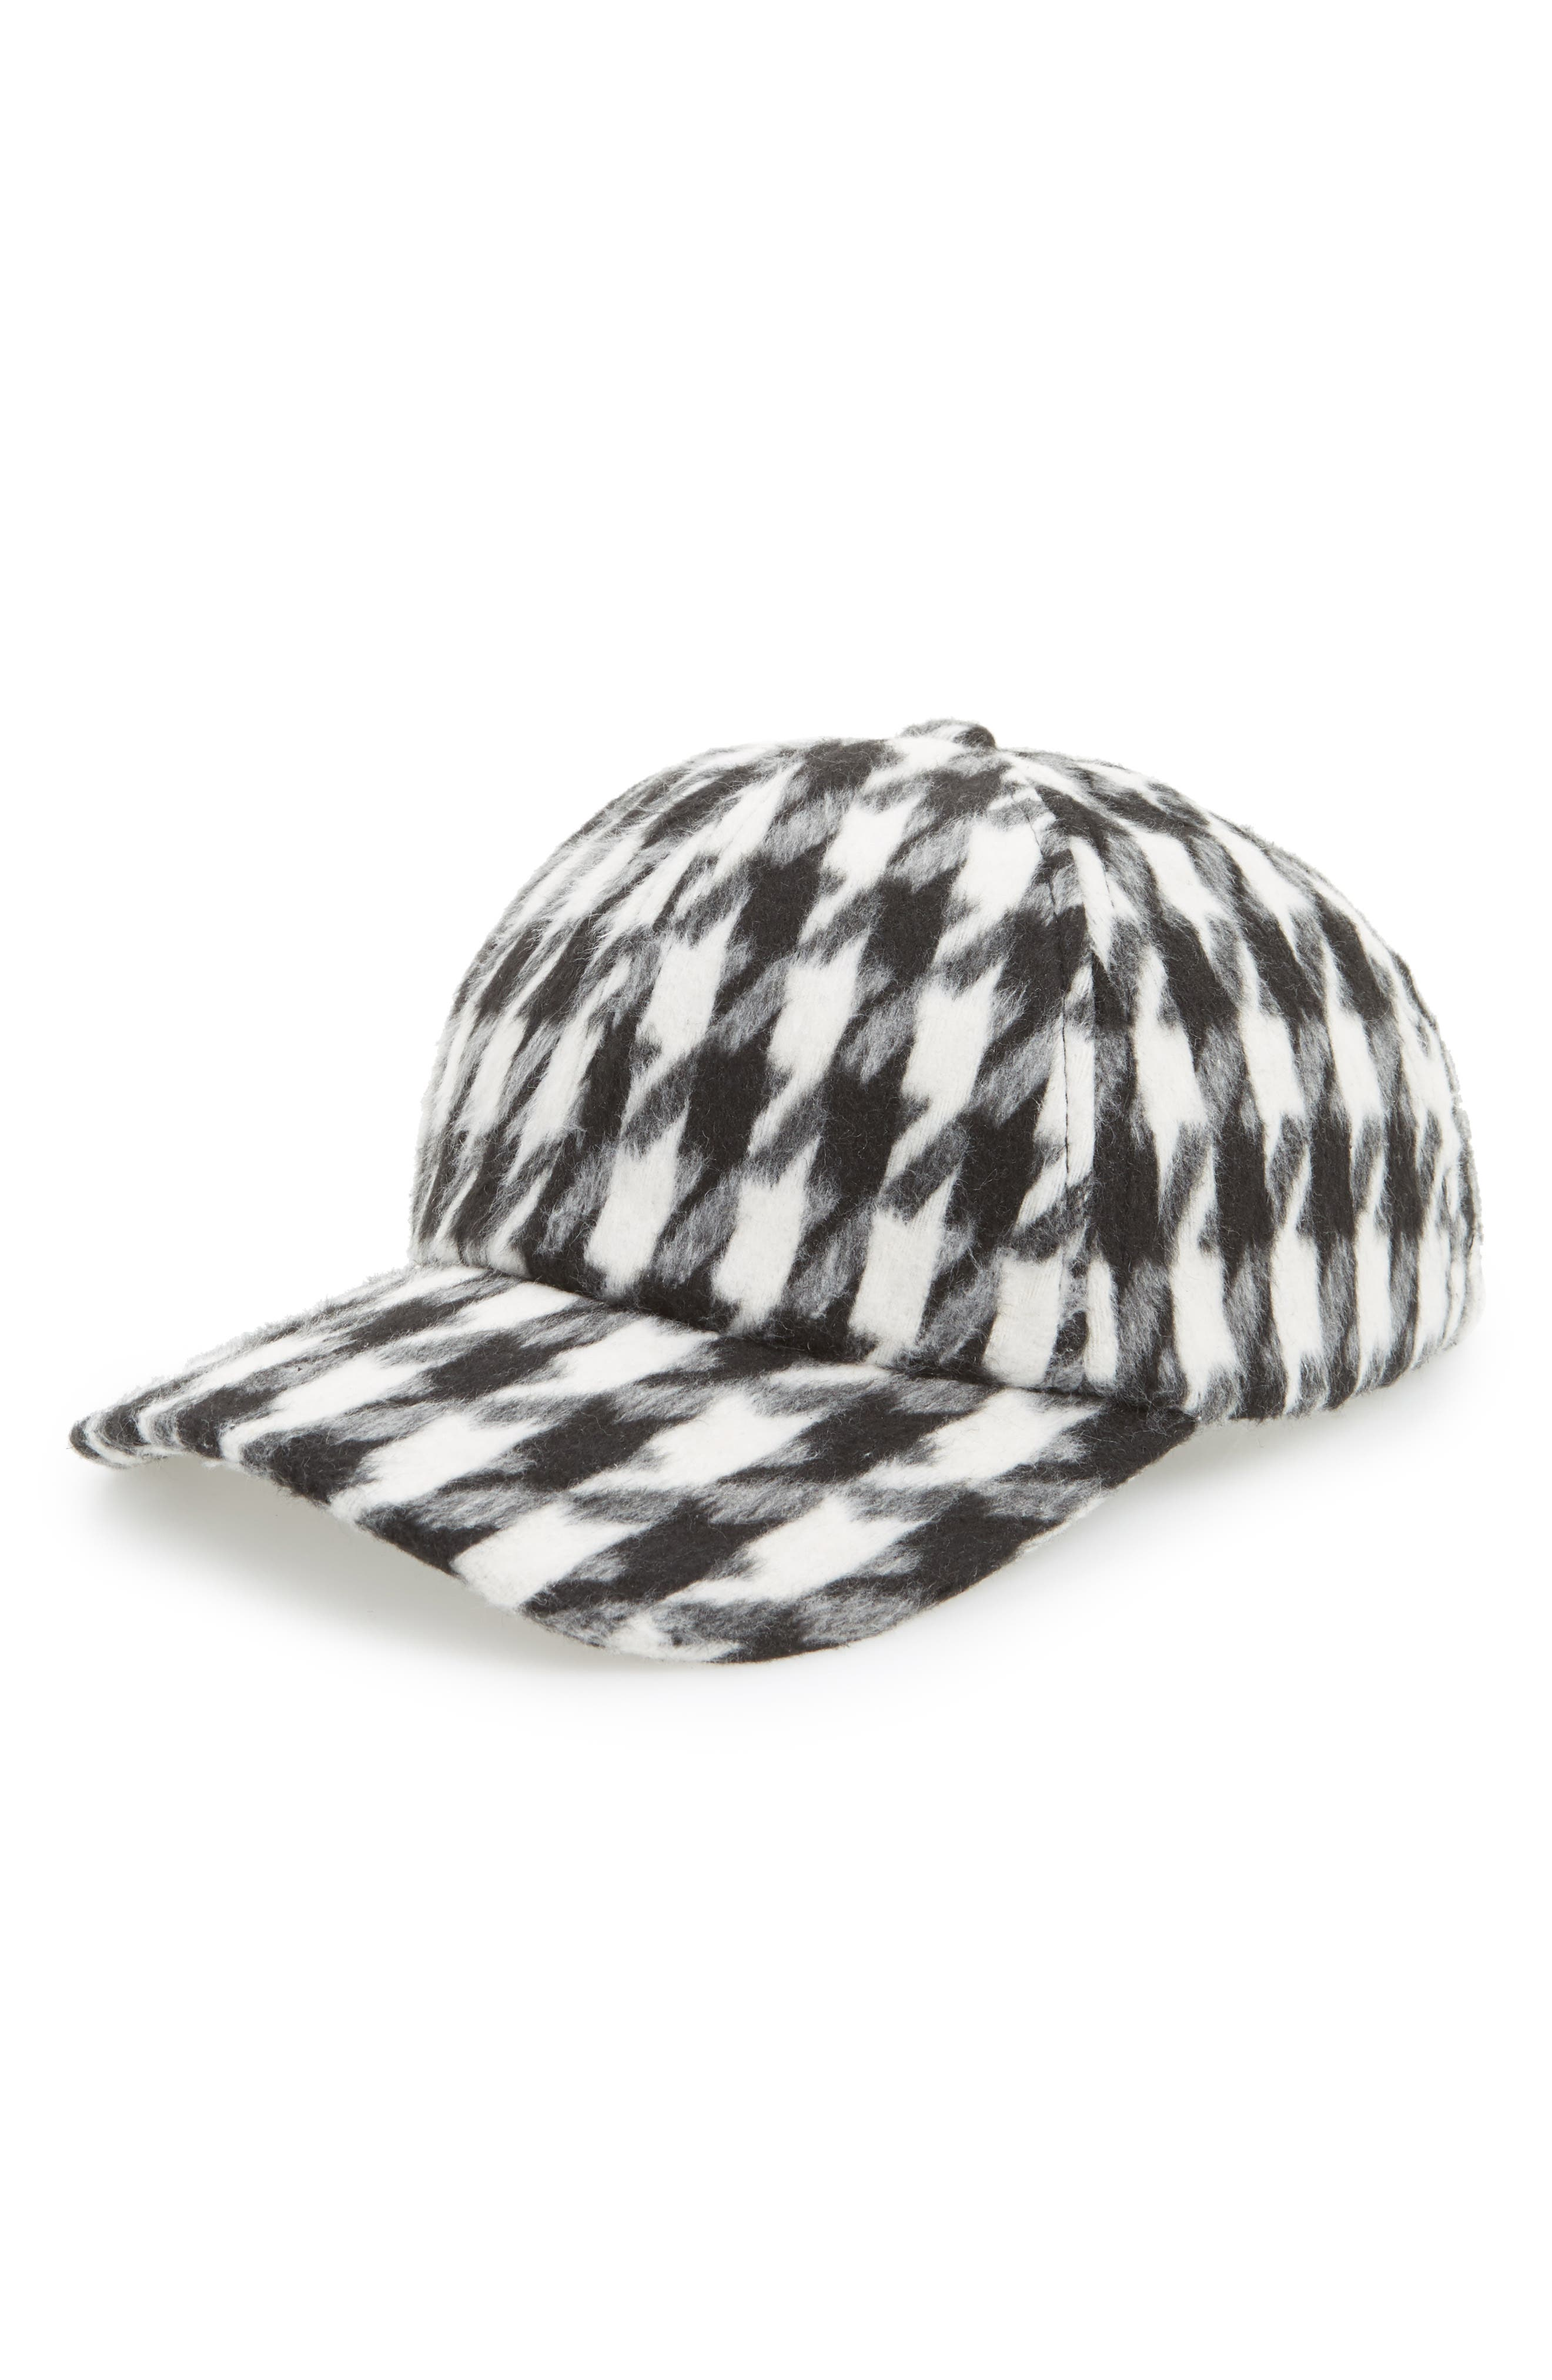 Amici Accessories Houndstooth Ball Cap